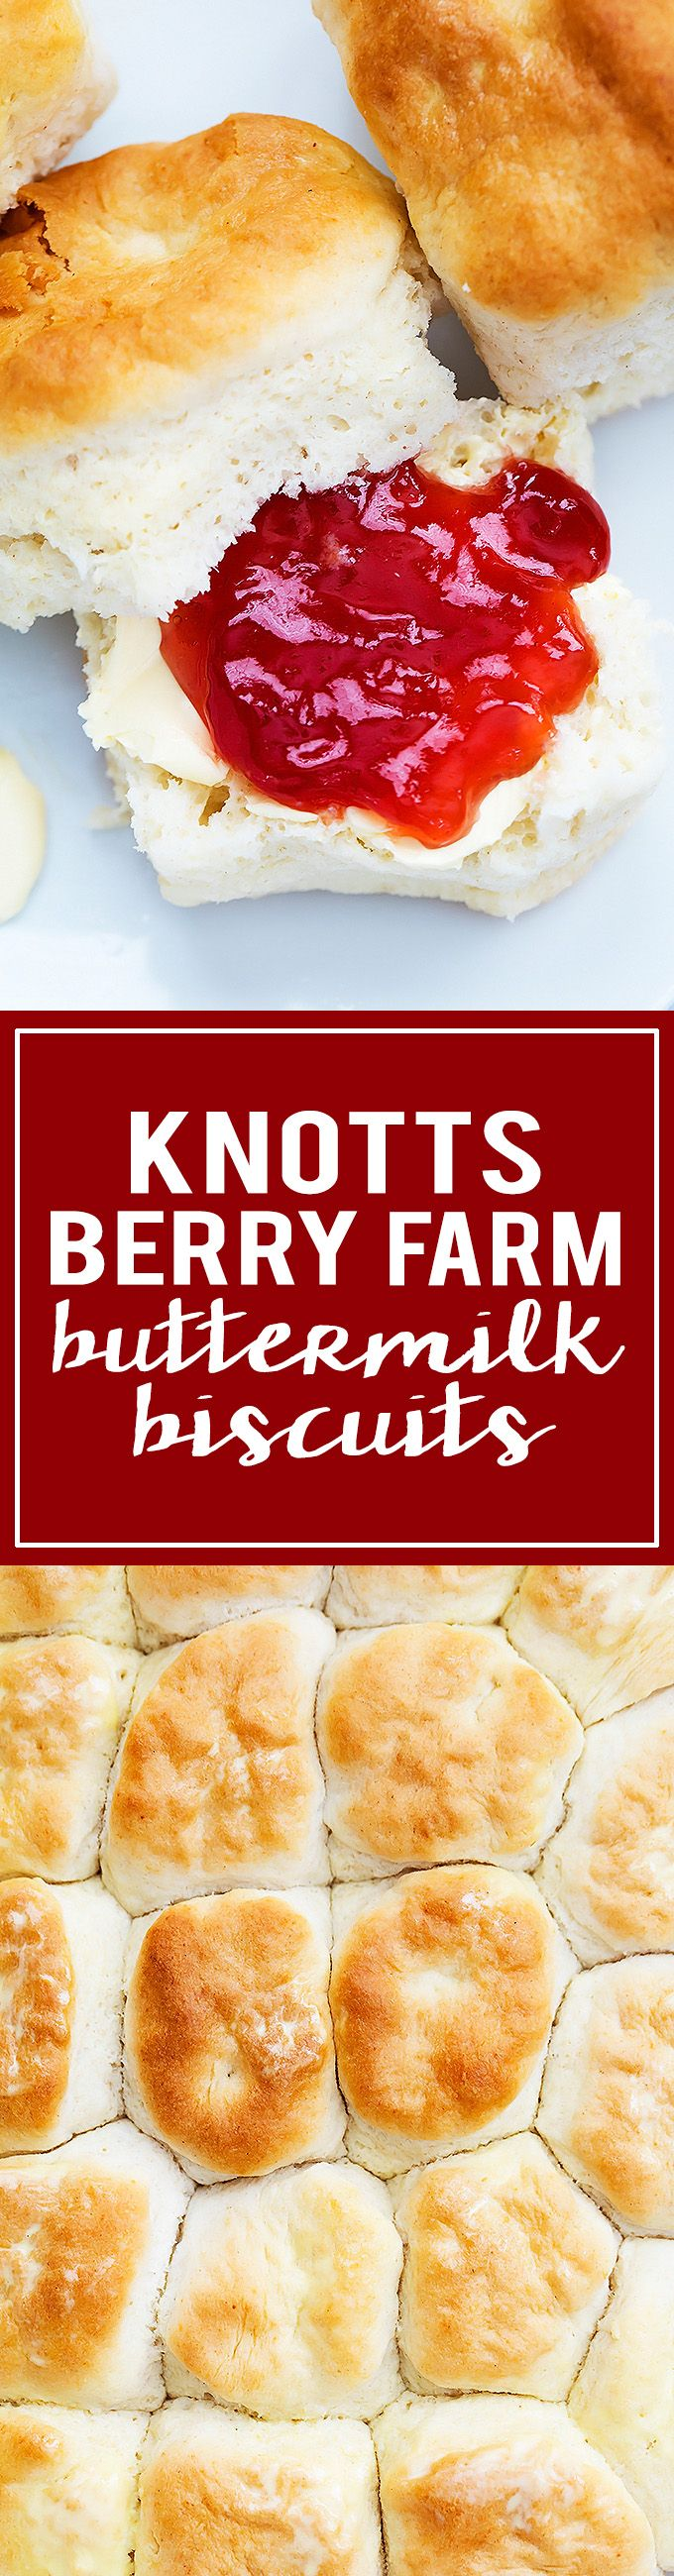 Incredibly buttery, flaky Knott's Berry Farm Buttermilk Biscuits - so easy to make! | Creme de la Crumb